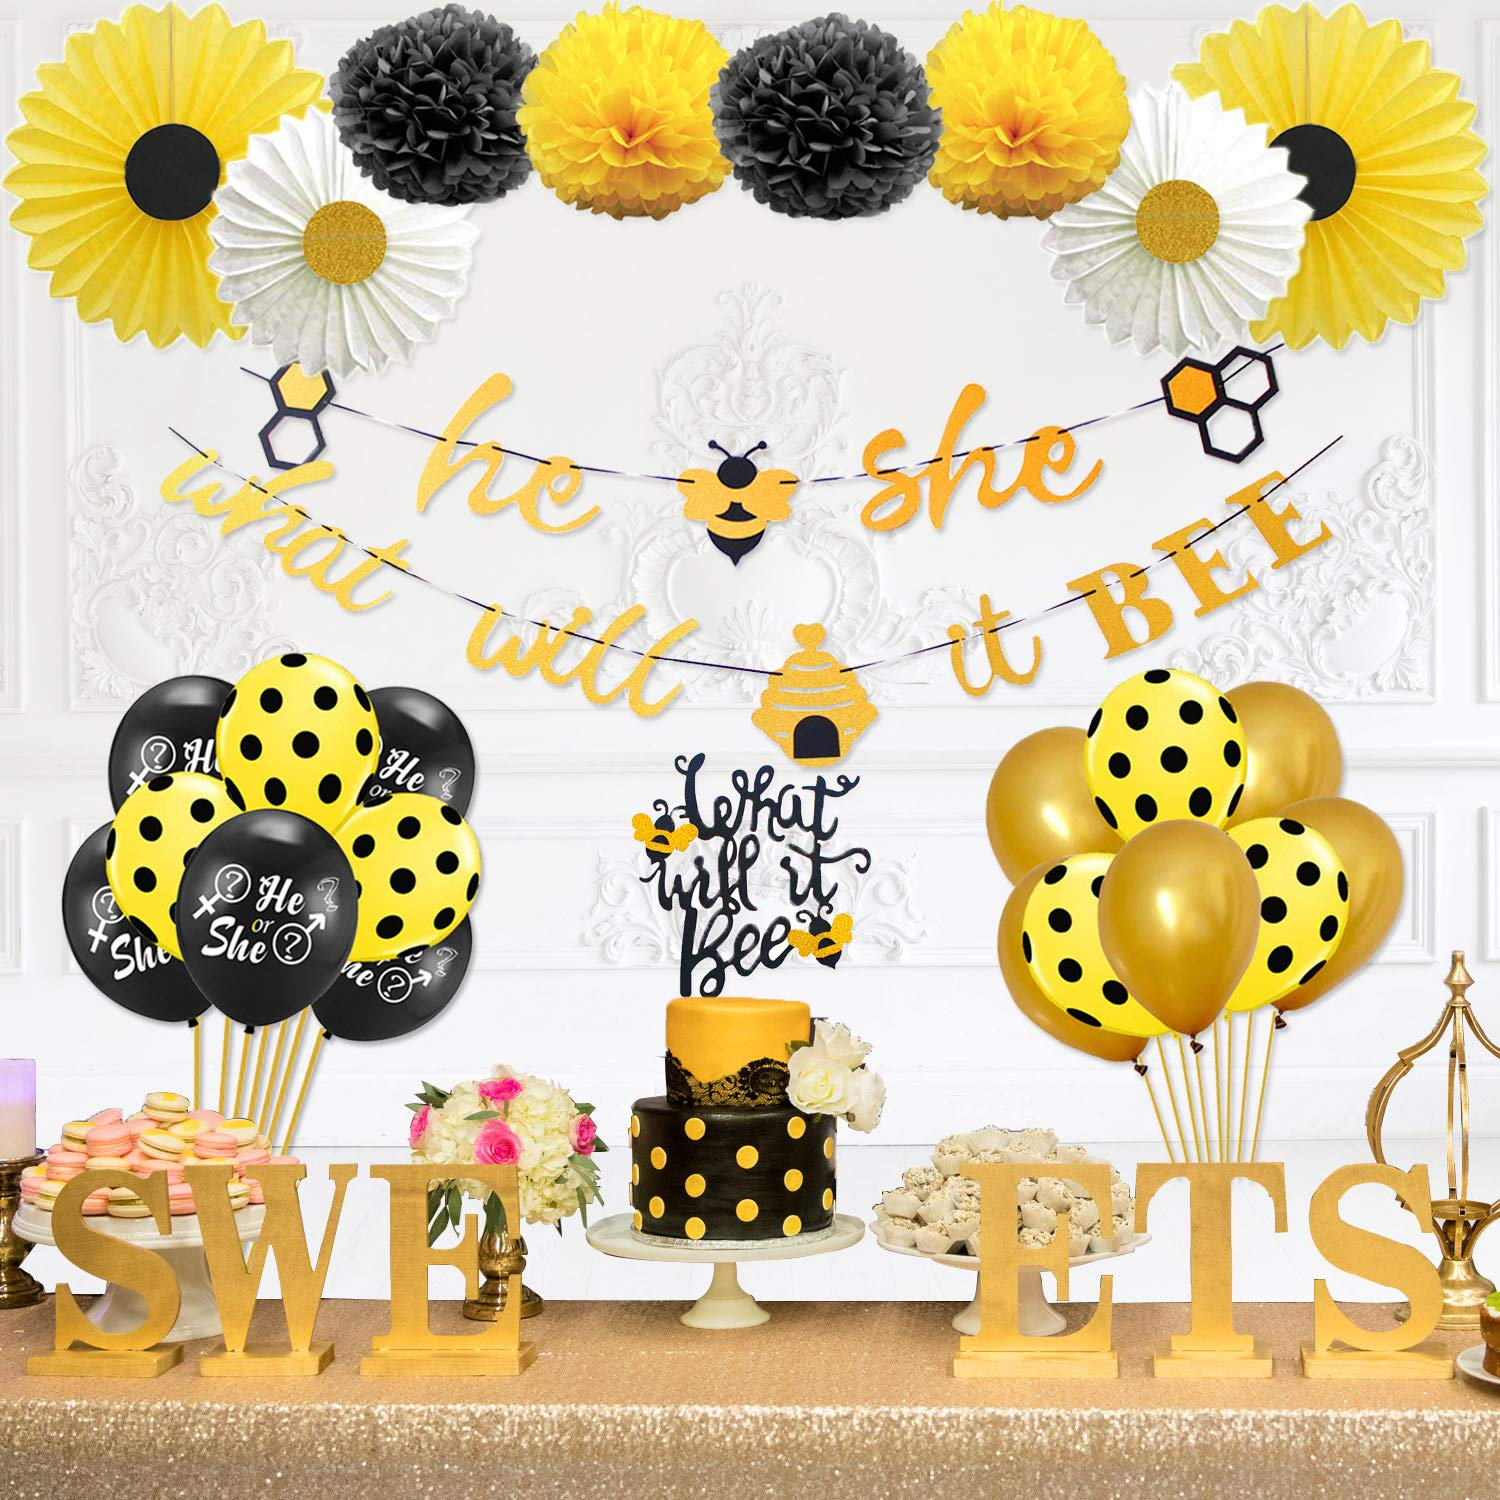 Party Inspo What Will It Bee Gender Reveal Party Supplies, Bumble Bee Baby Shower Decorations, Honey Bee Cupcake Toppers, Bee Balloons, He or She Banner, Tissue Paper Fans, Pom Poms